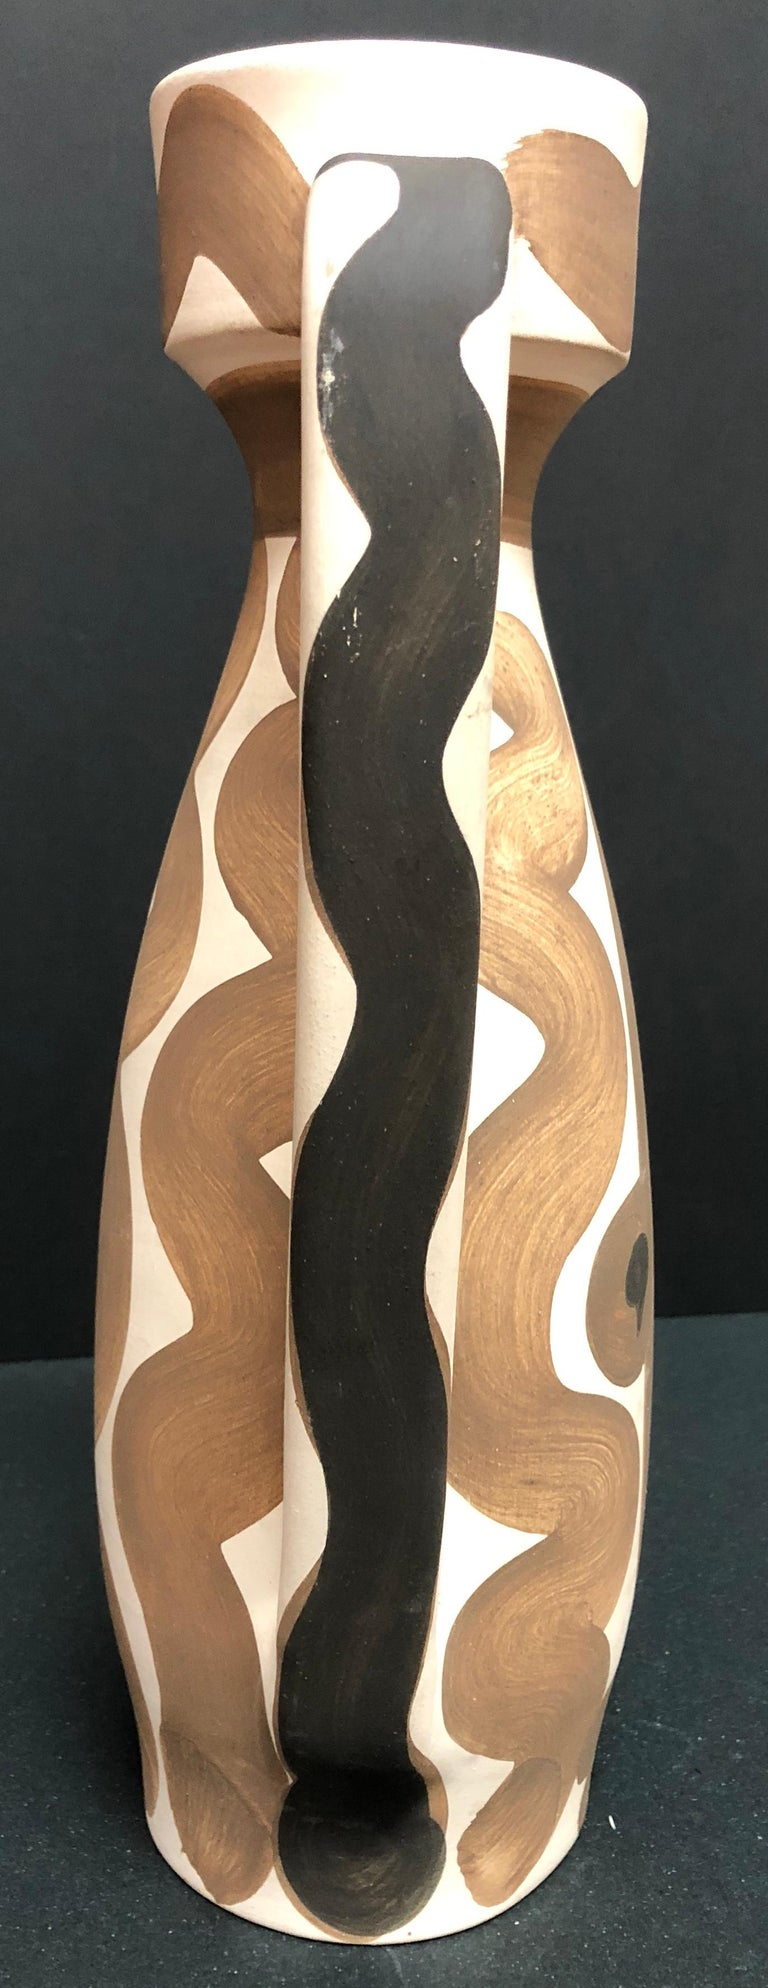 This piece is an A.R. turned pitcher created by Pablo Picasso in 1955.  It is made with white earthenware clay, decoration in engobes in red and black with glaze inside. It bears the